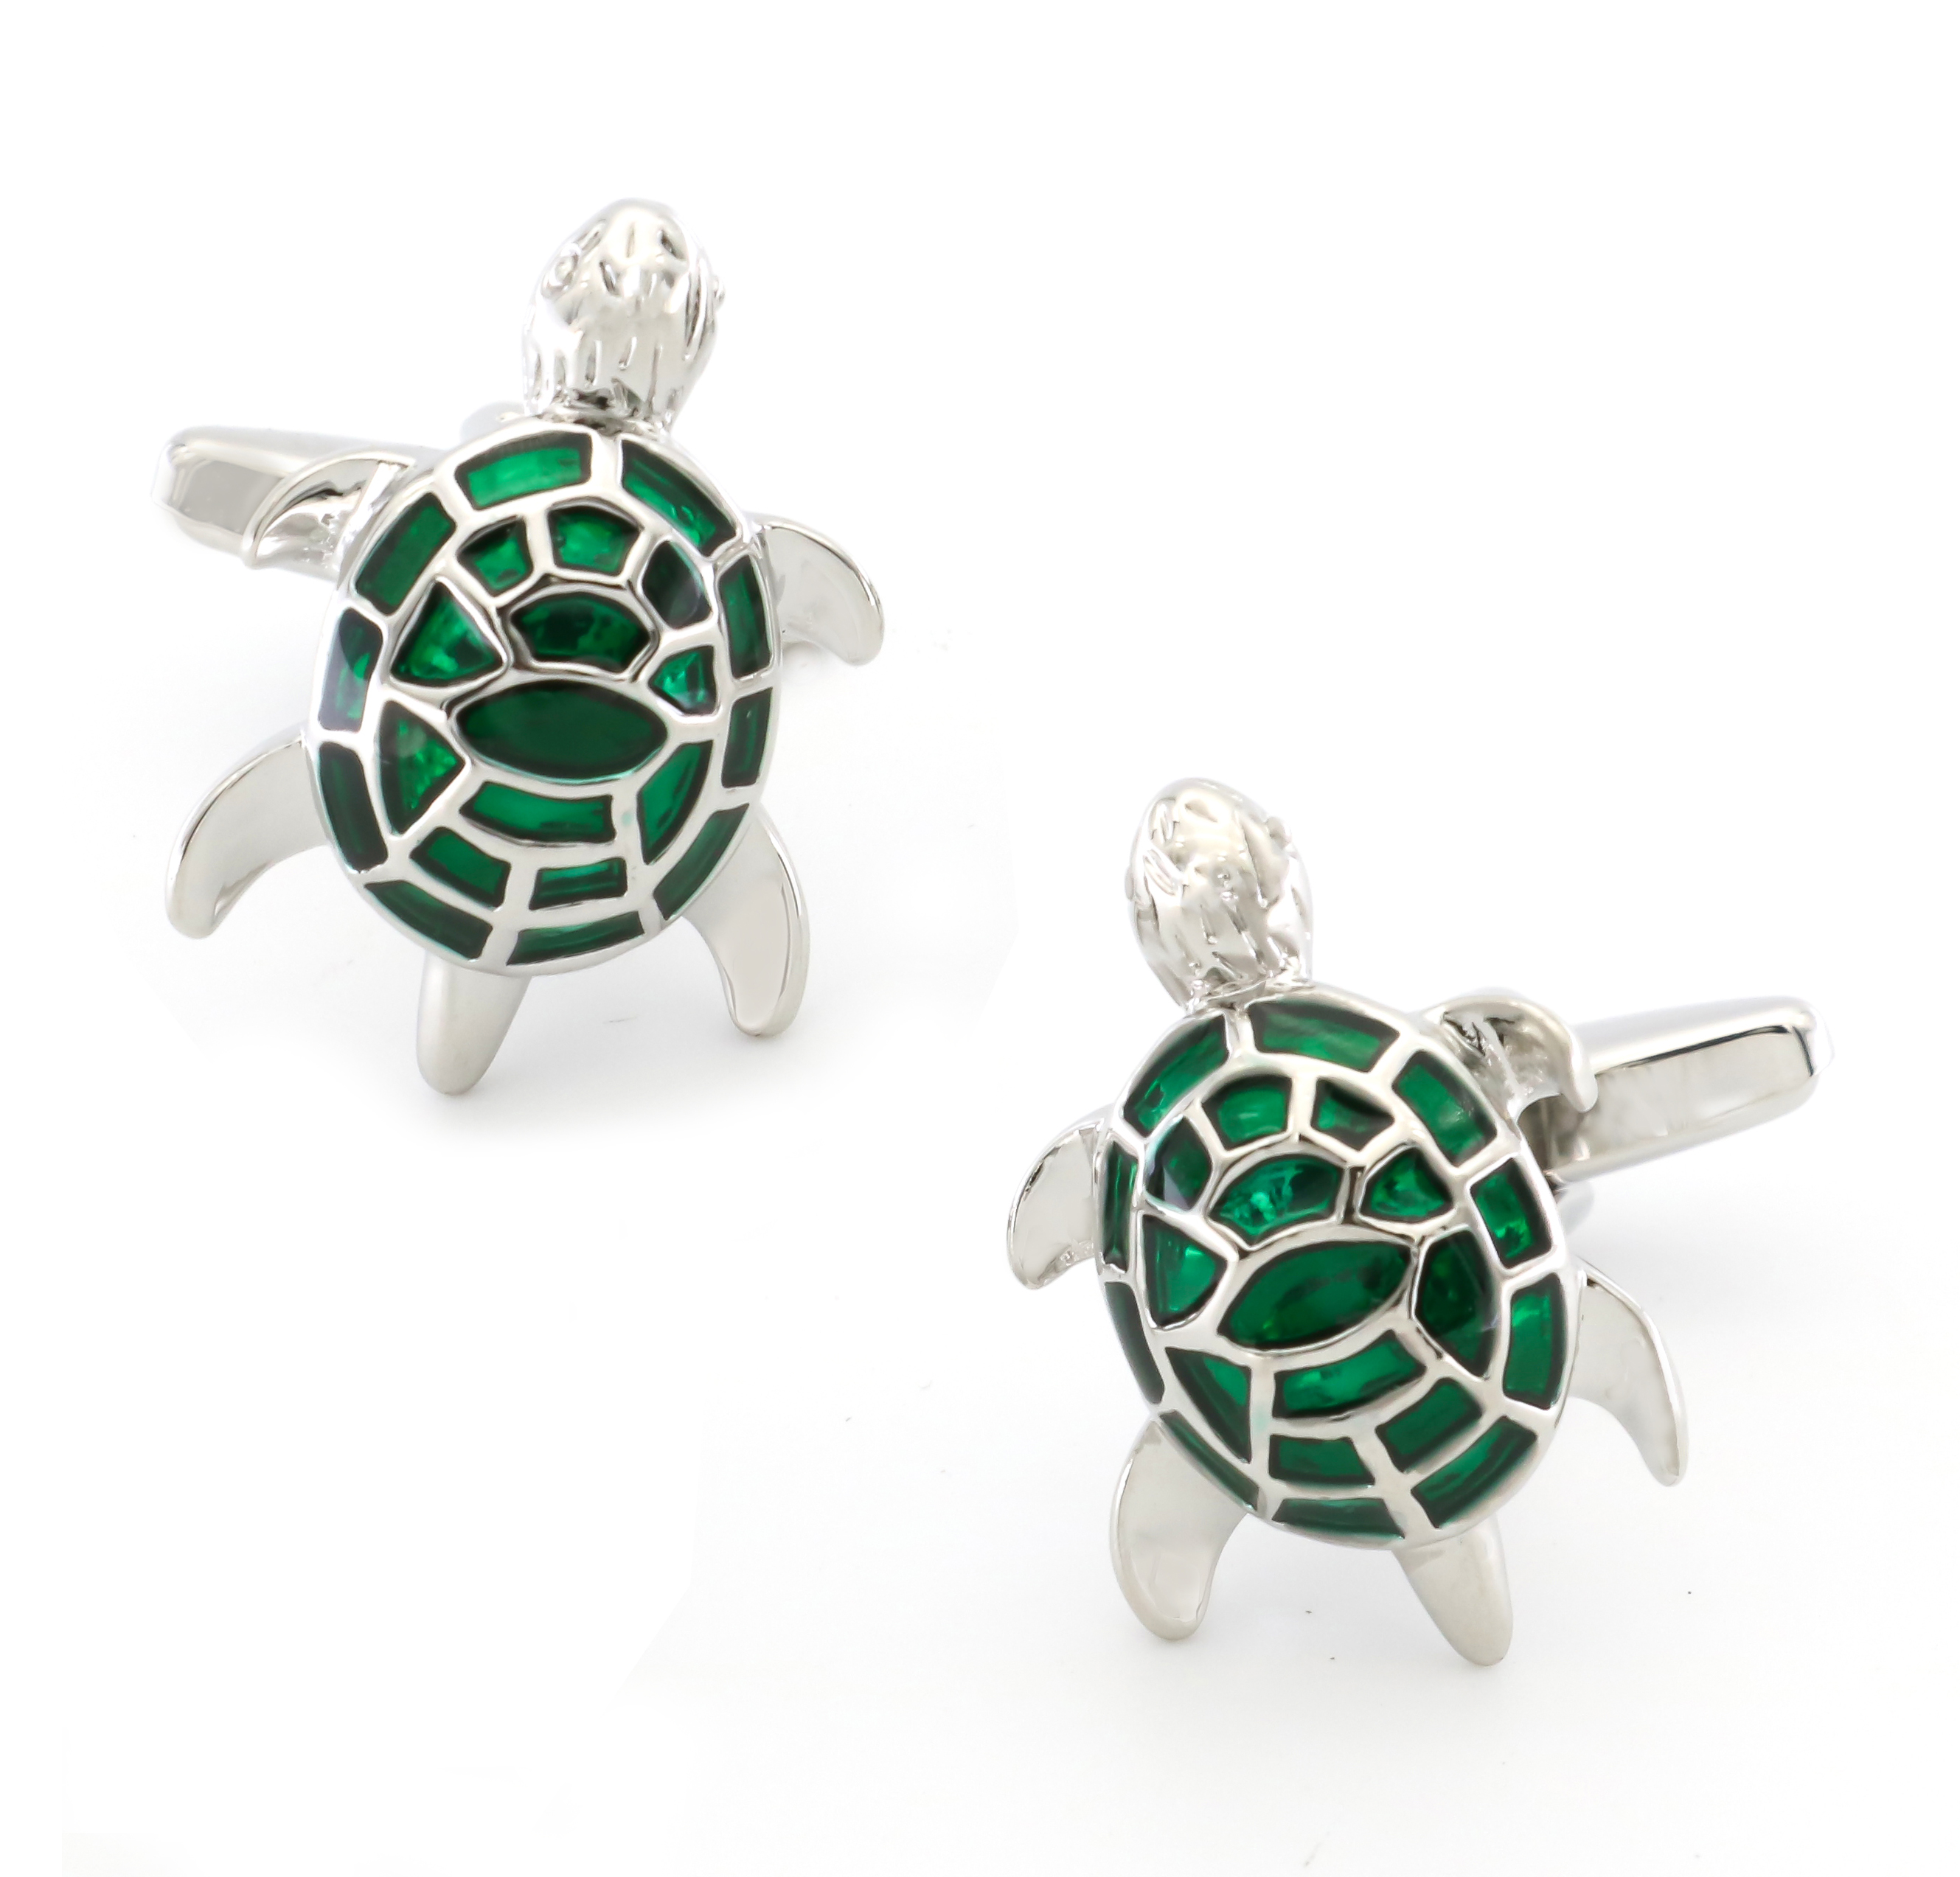 Turtle Cuff Links For Men Tortoise Design Quality Brass Material Green Color Cufflinks Wholesale&retail